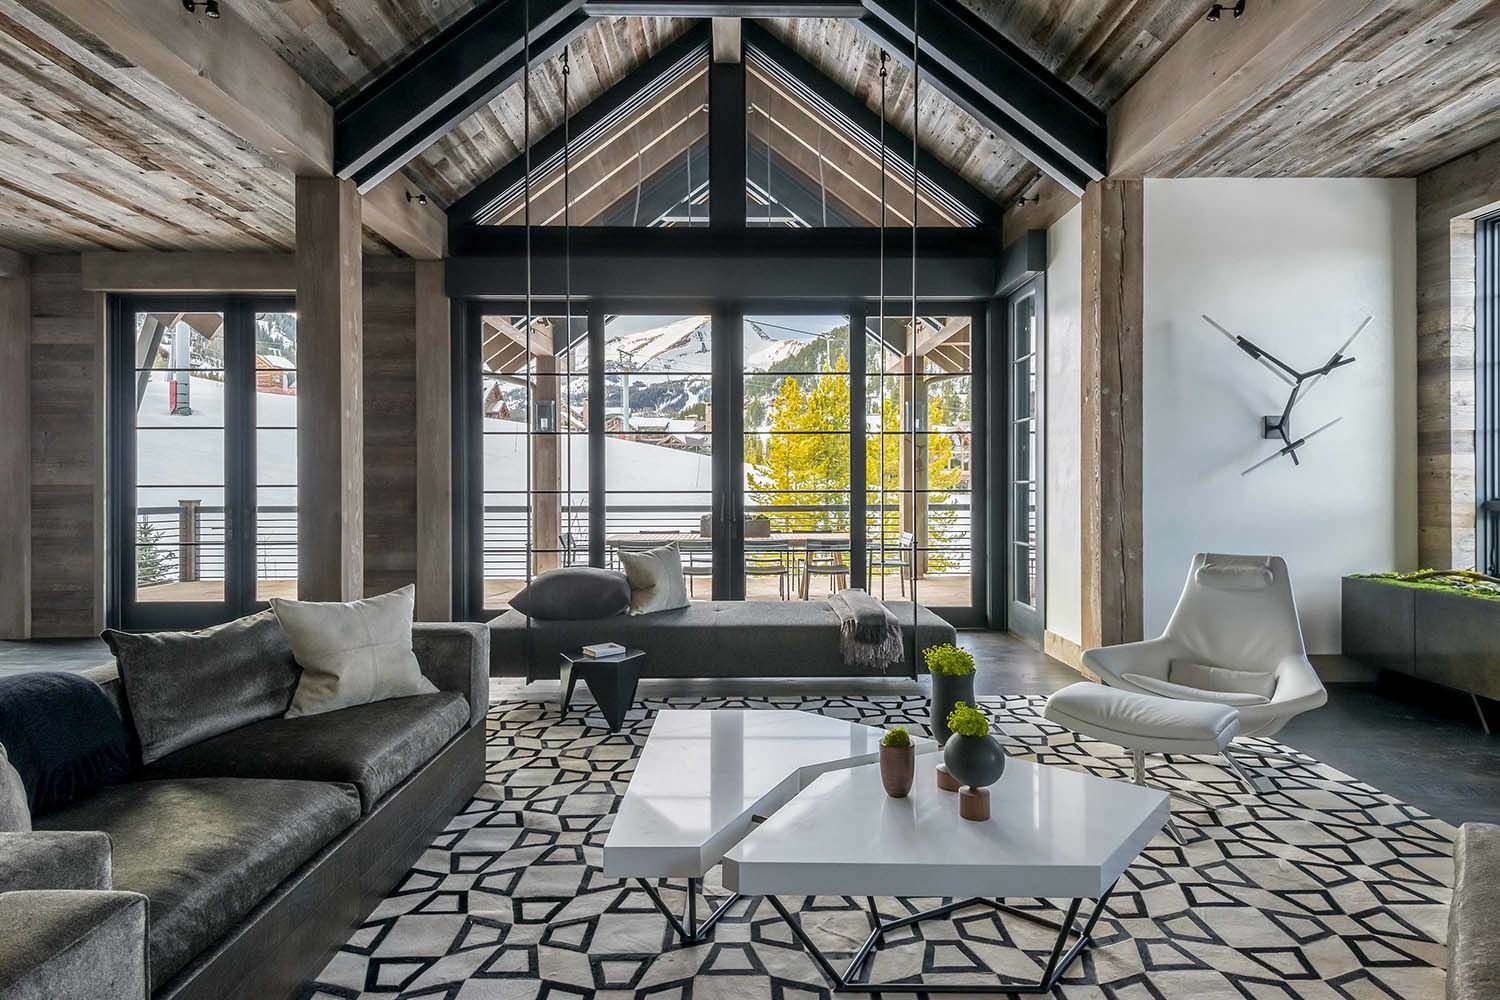 The hillside snowcrest residence is a rustic modern ski in ski out luxury chalet designed by locati architects located in the yellowstone club montana